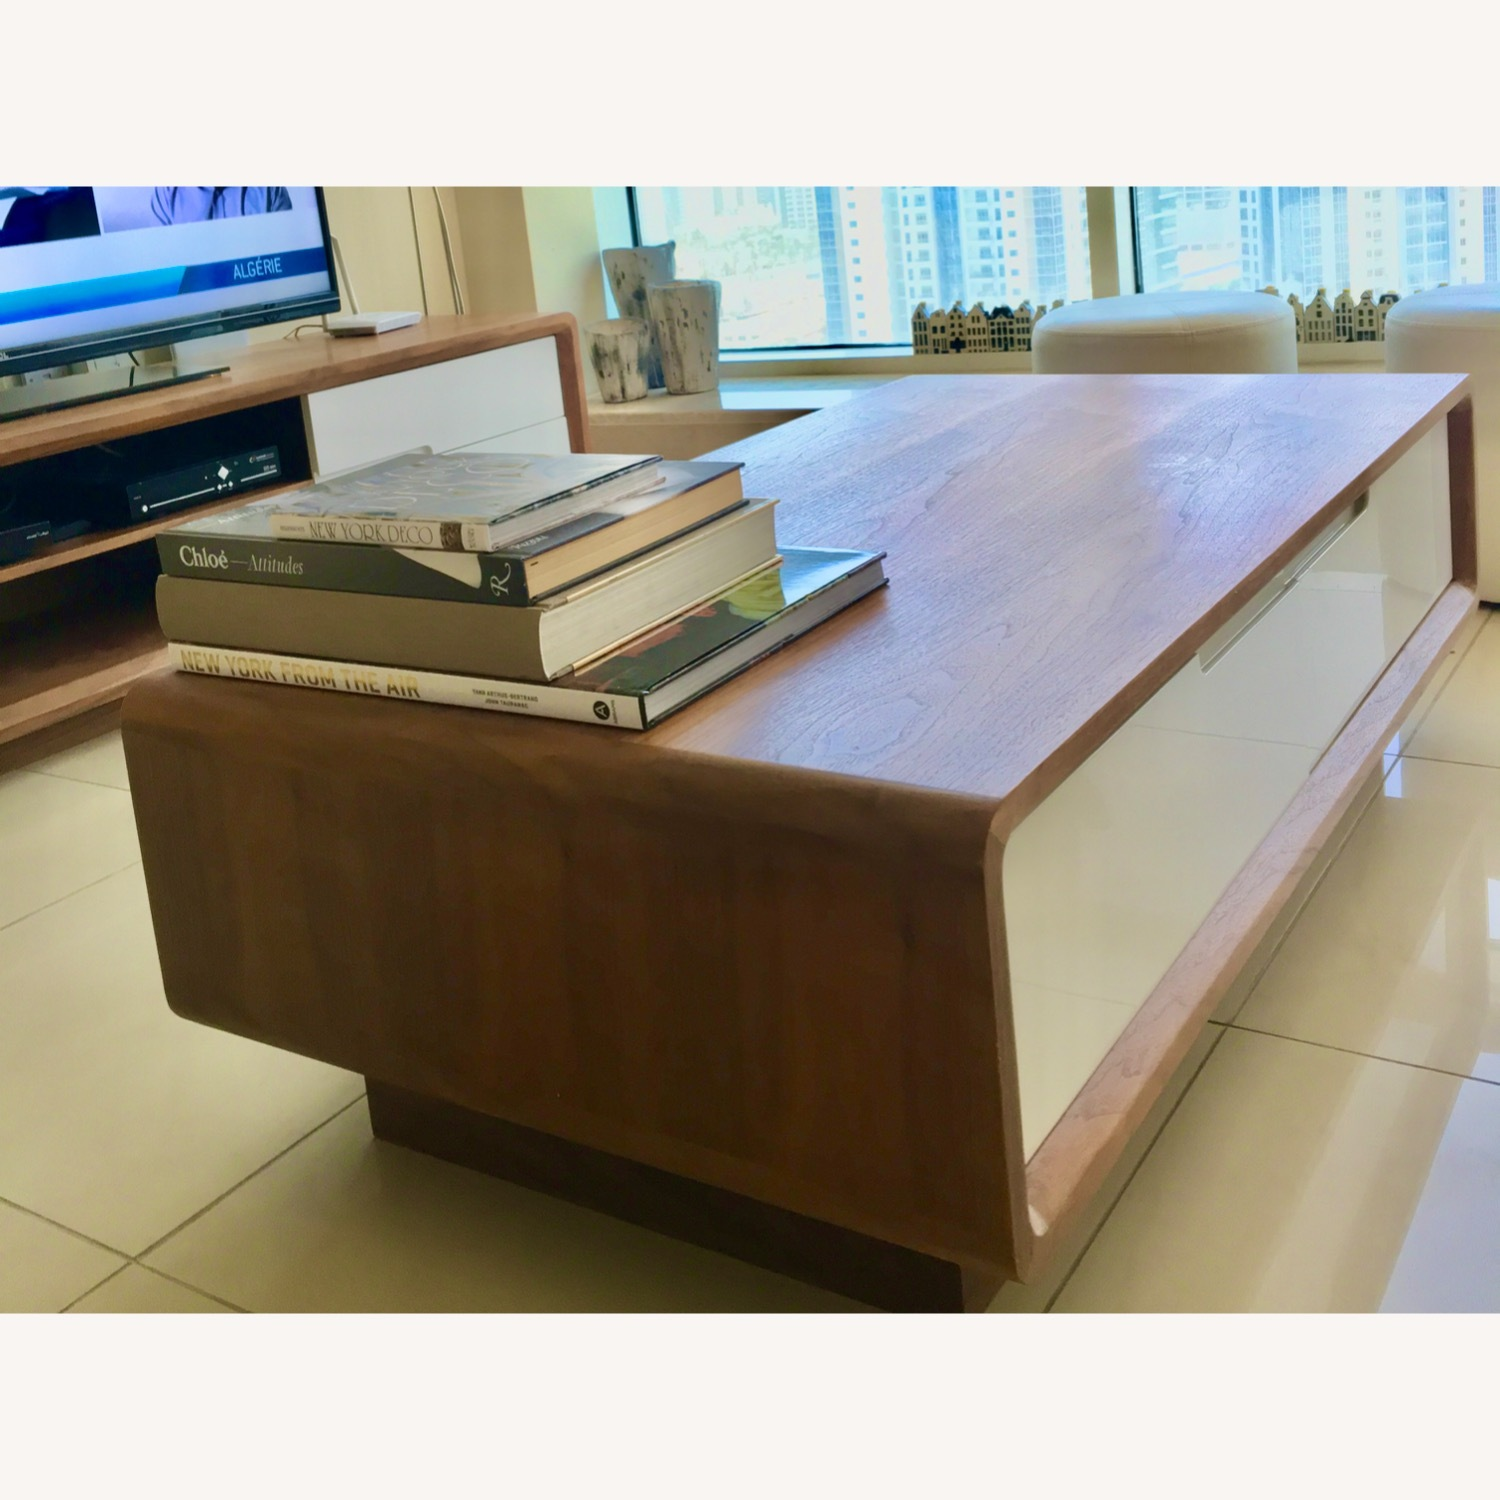 Design Art Deco Coffee Table with Four Drawers - image-0